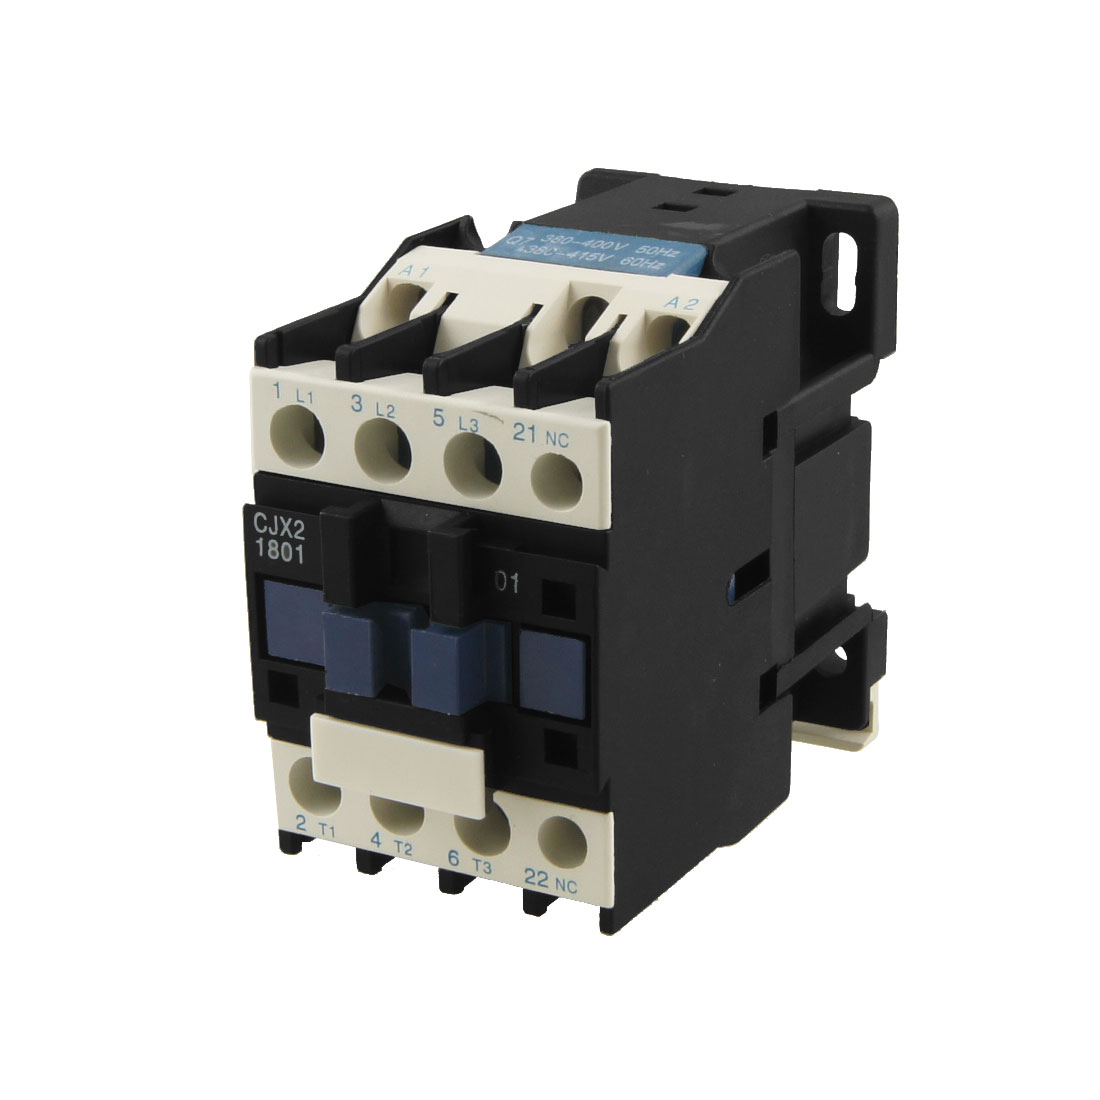 CJX2-1801 AC Contactor 18A 3 Phase 3-Pole NC 220V 50/60Hz Coil